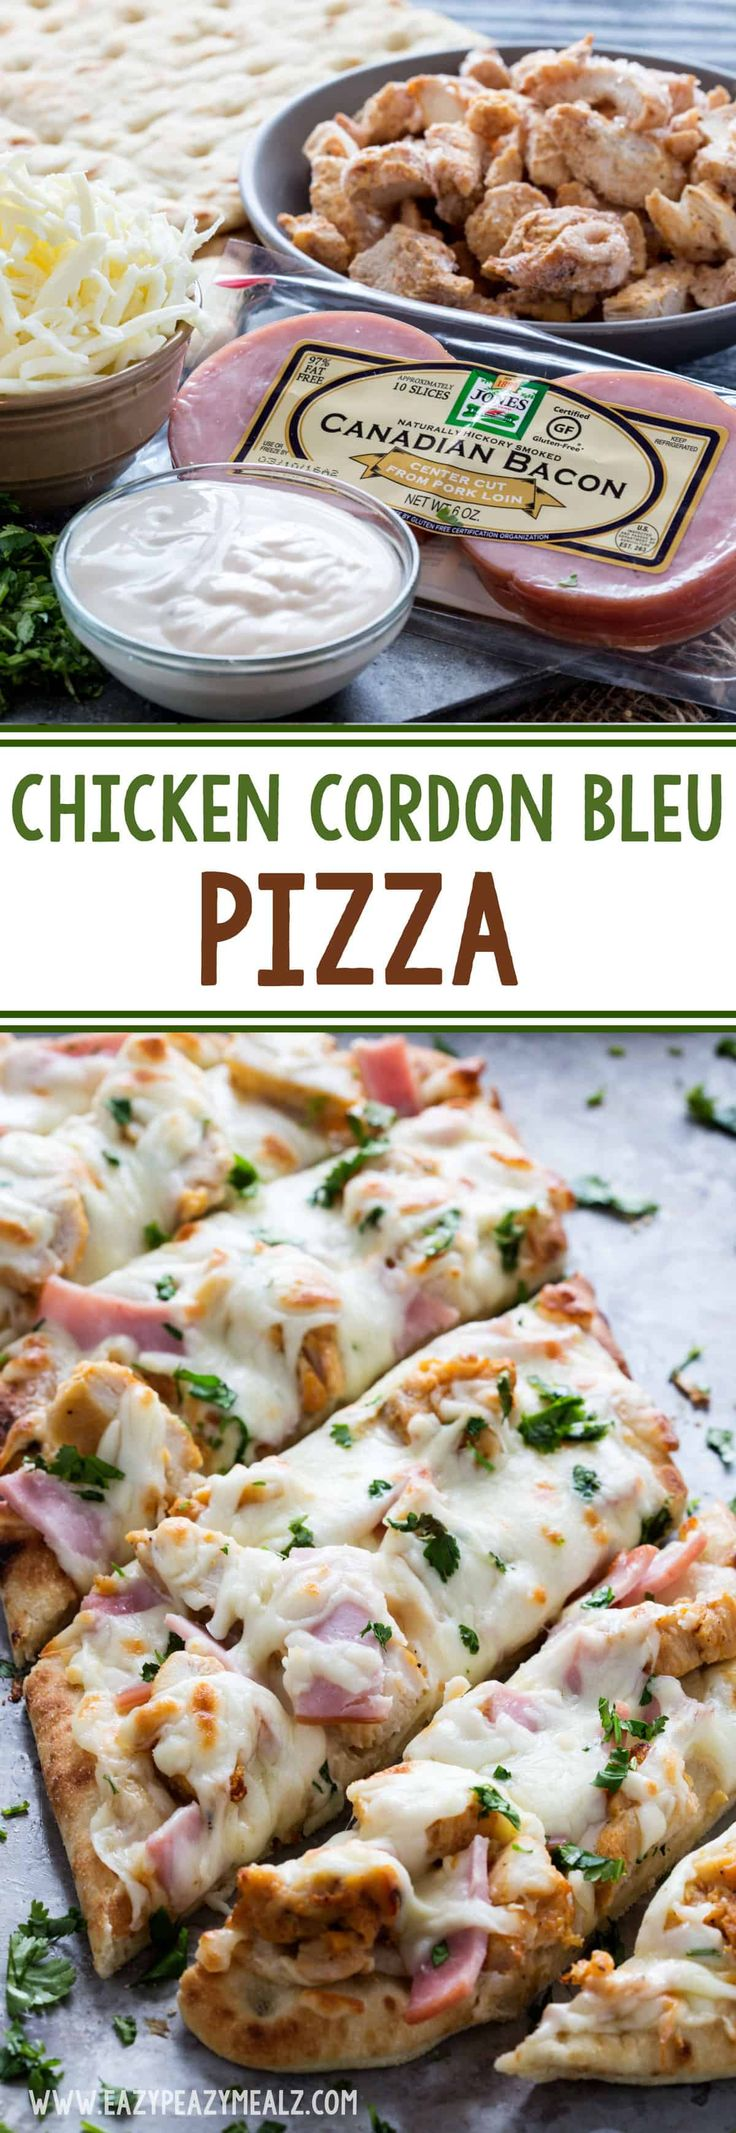 Midweek meals just easier and tastier with this chicken cordon bleu pizza. Made with a Stonefire crust, Jones Dairy Farms Canadian Bacon, pre-cooked grilled chicken, alfredo, mozzarella and parsley. It is easy, tasty, and something the whole family will love. During the week life around here is pretty hectic. So hectic in fact that yesterday...Read More »